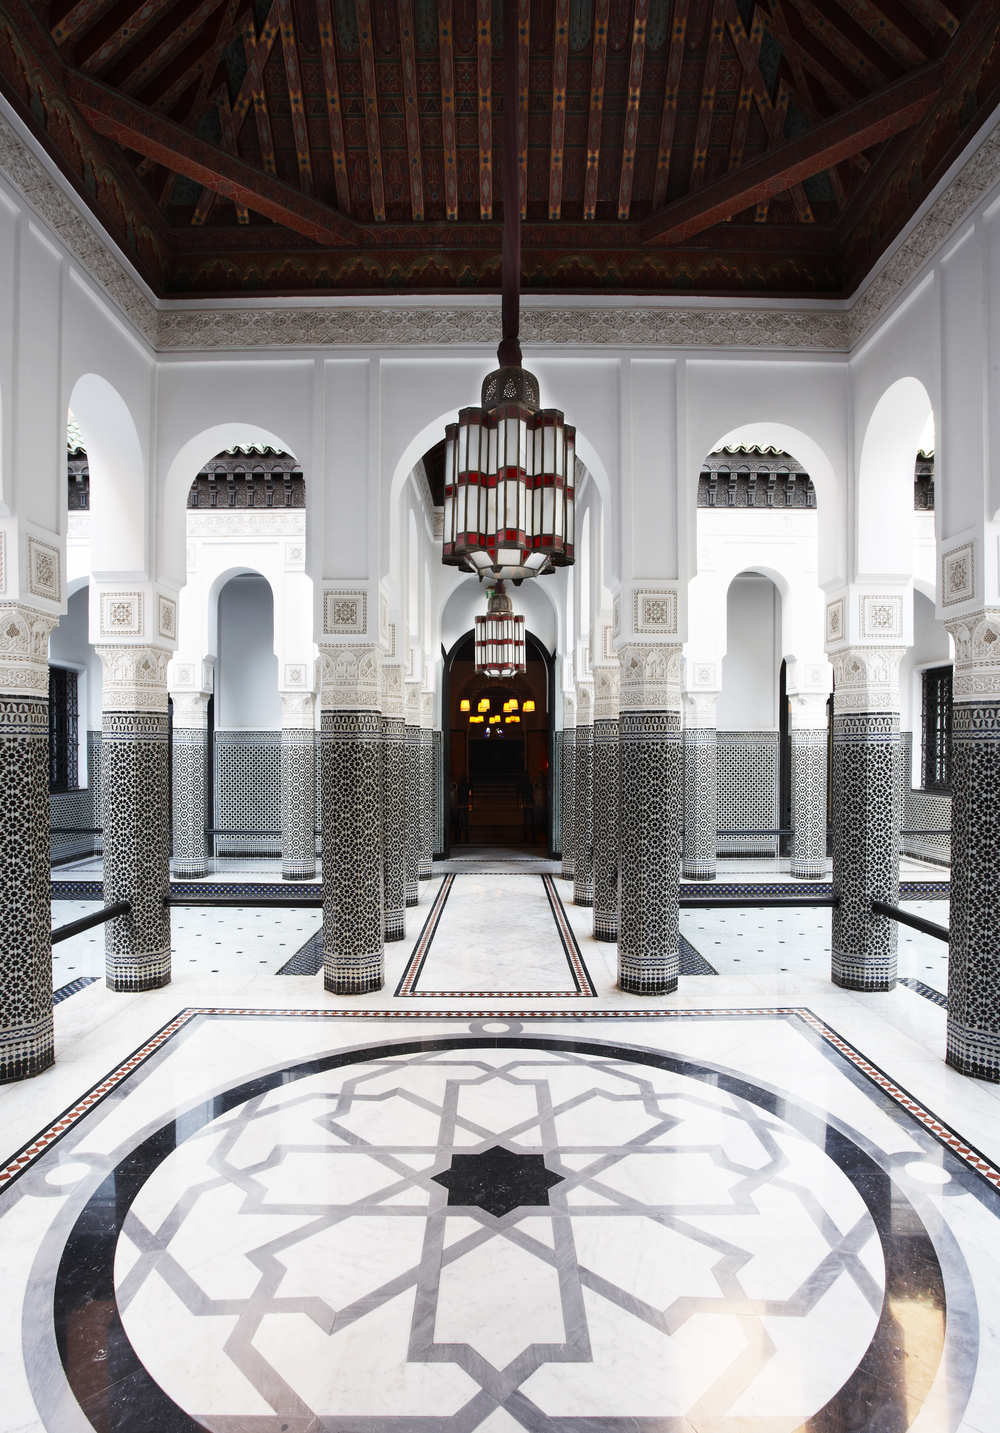 La Mamounia Marrakech Spa Pool Hammam 2015 9 .jpg